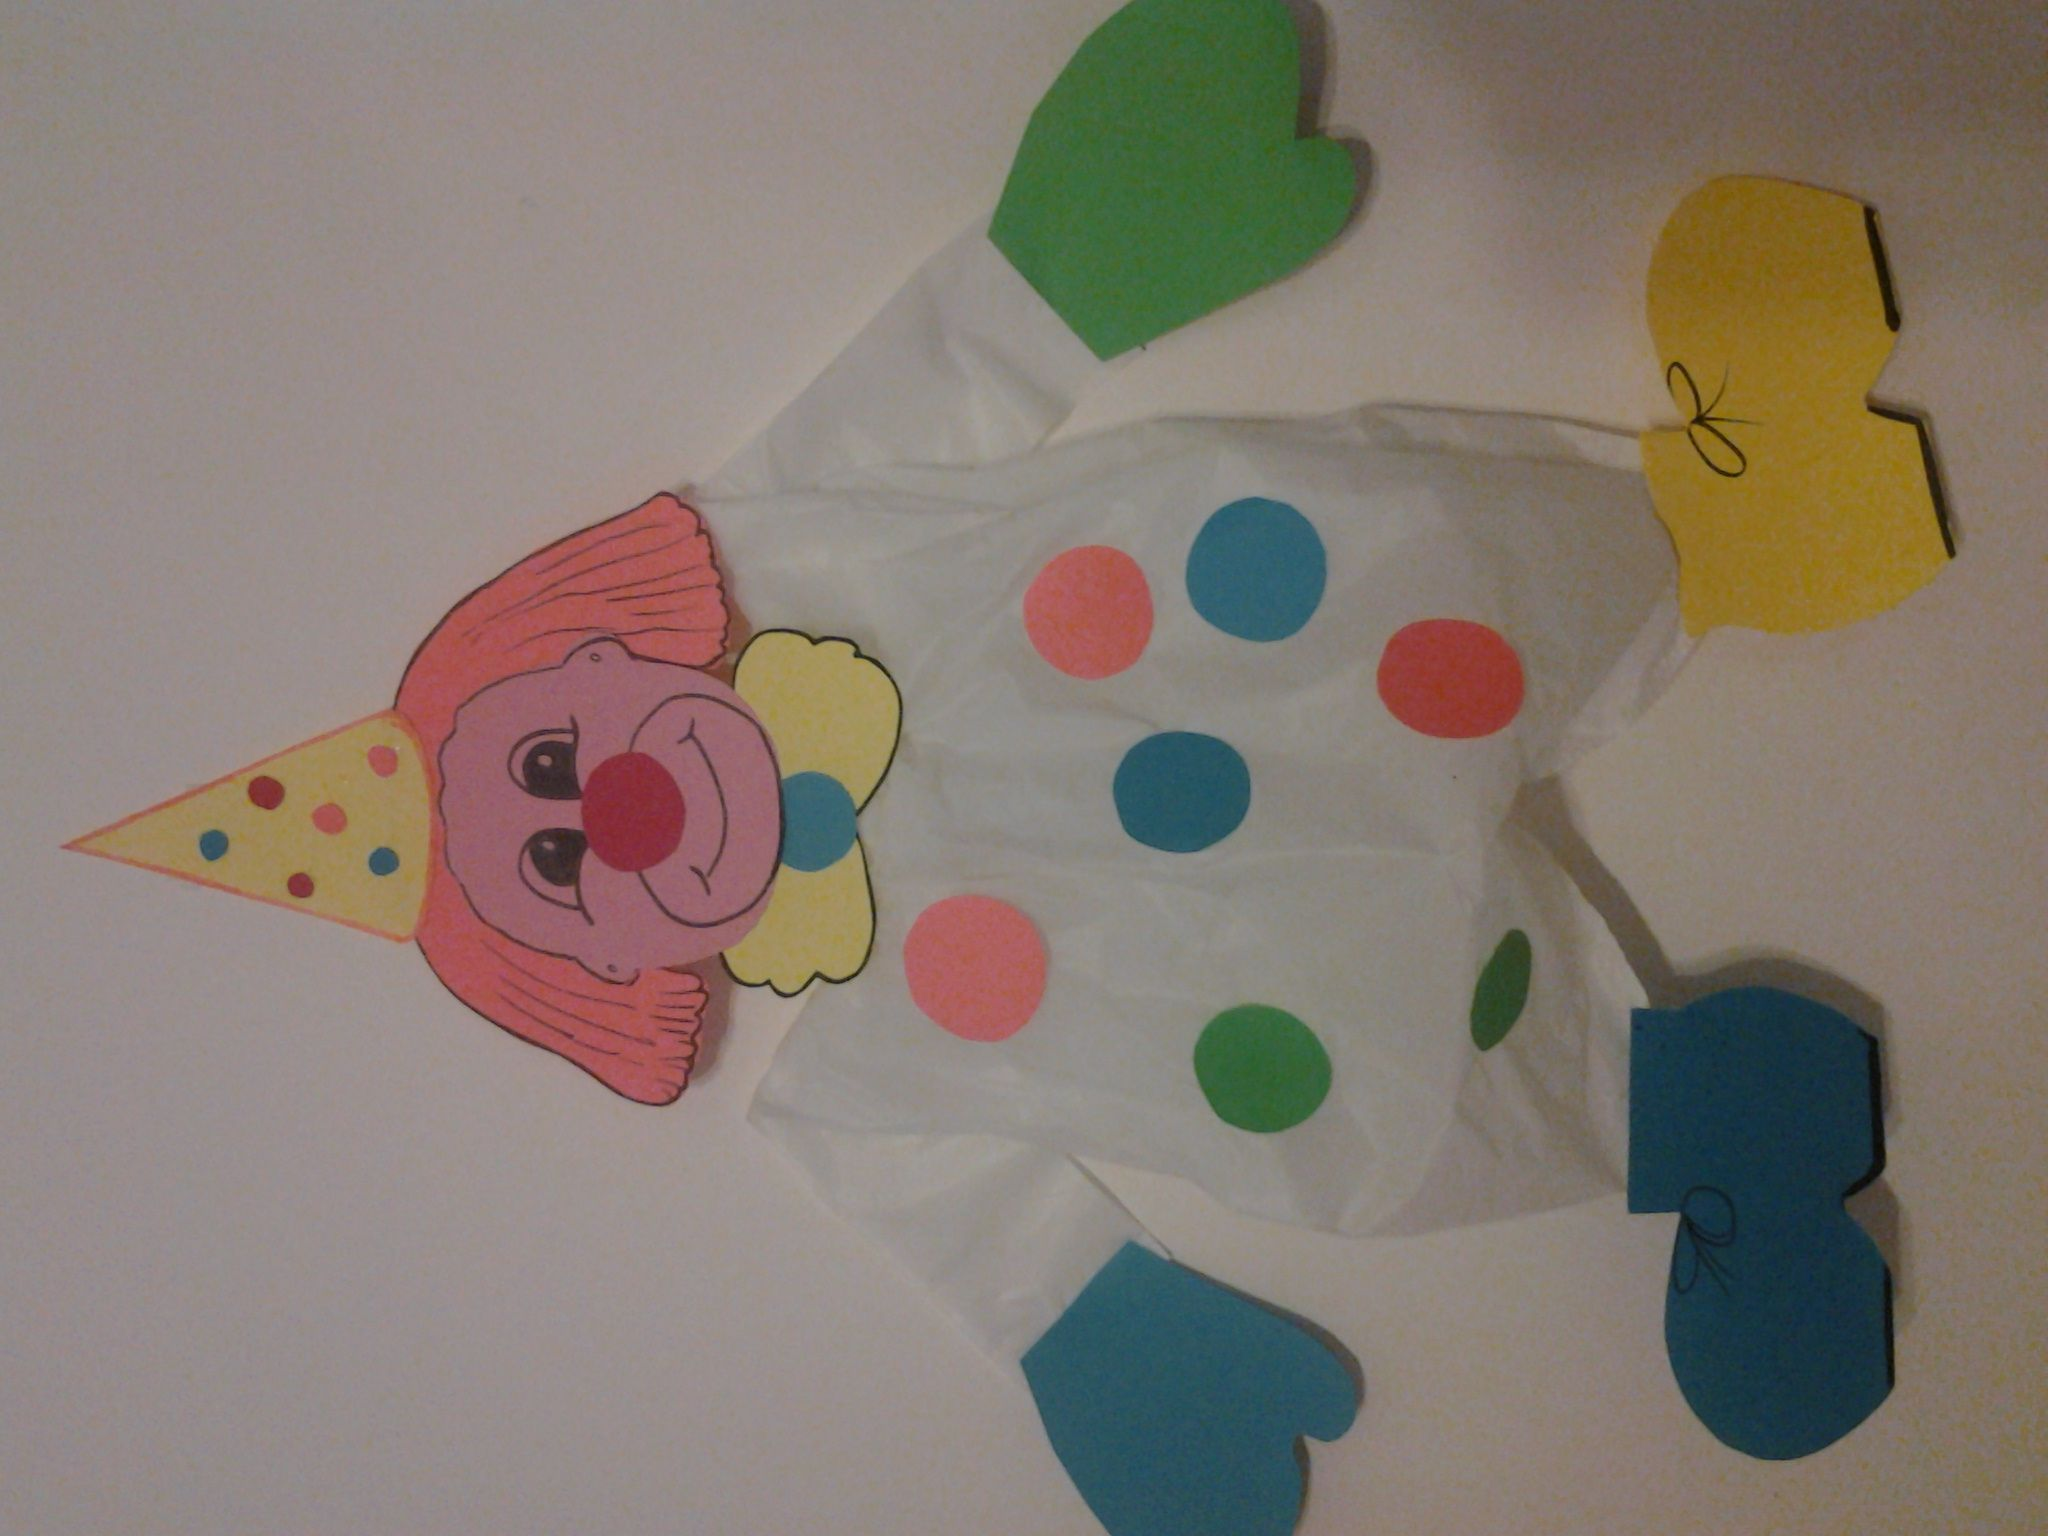 A funny clown to decorate the walls of the room Paper and plastic the materials for it. Dimensions: 55 x 35 cm